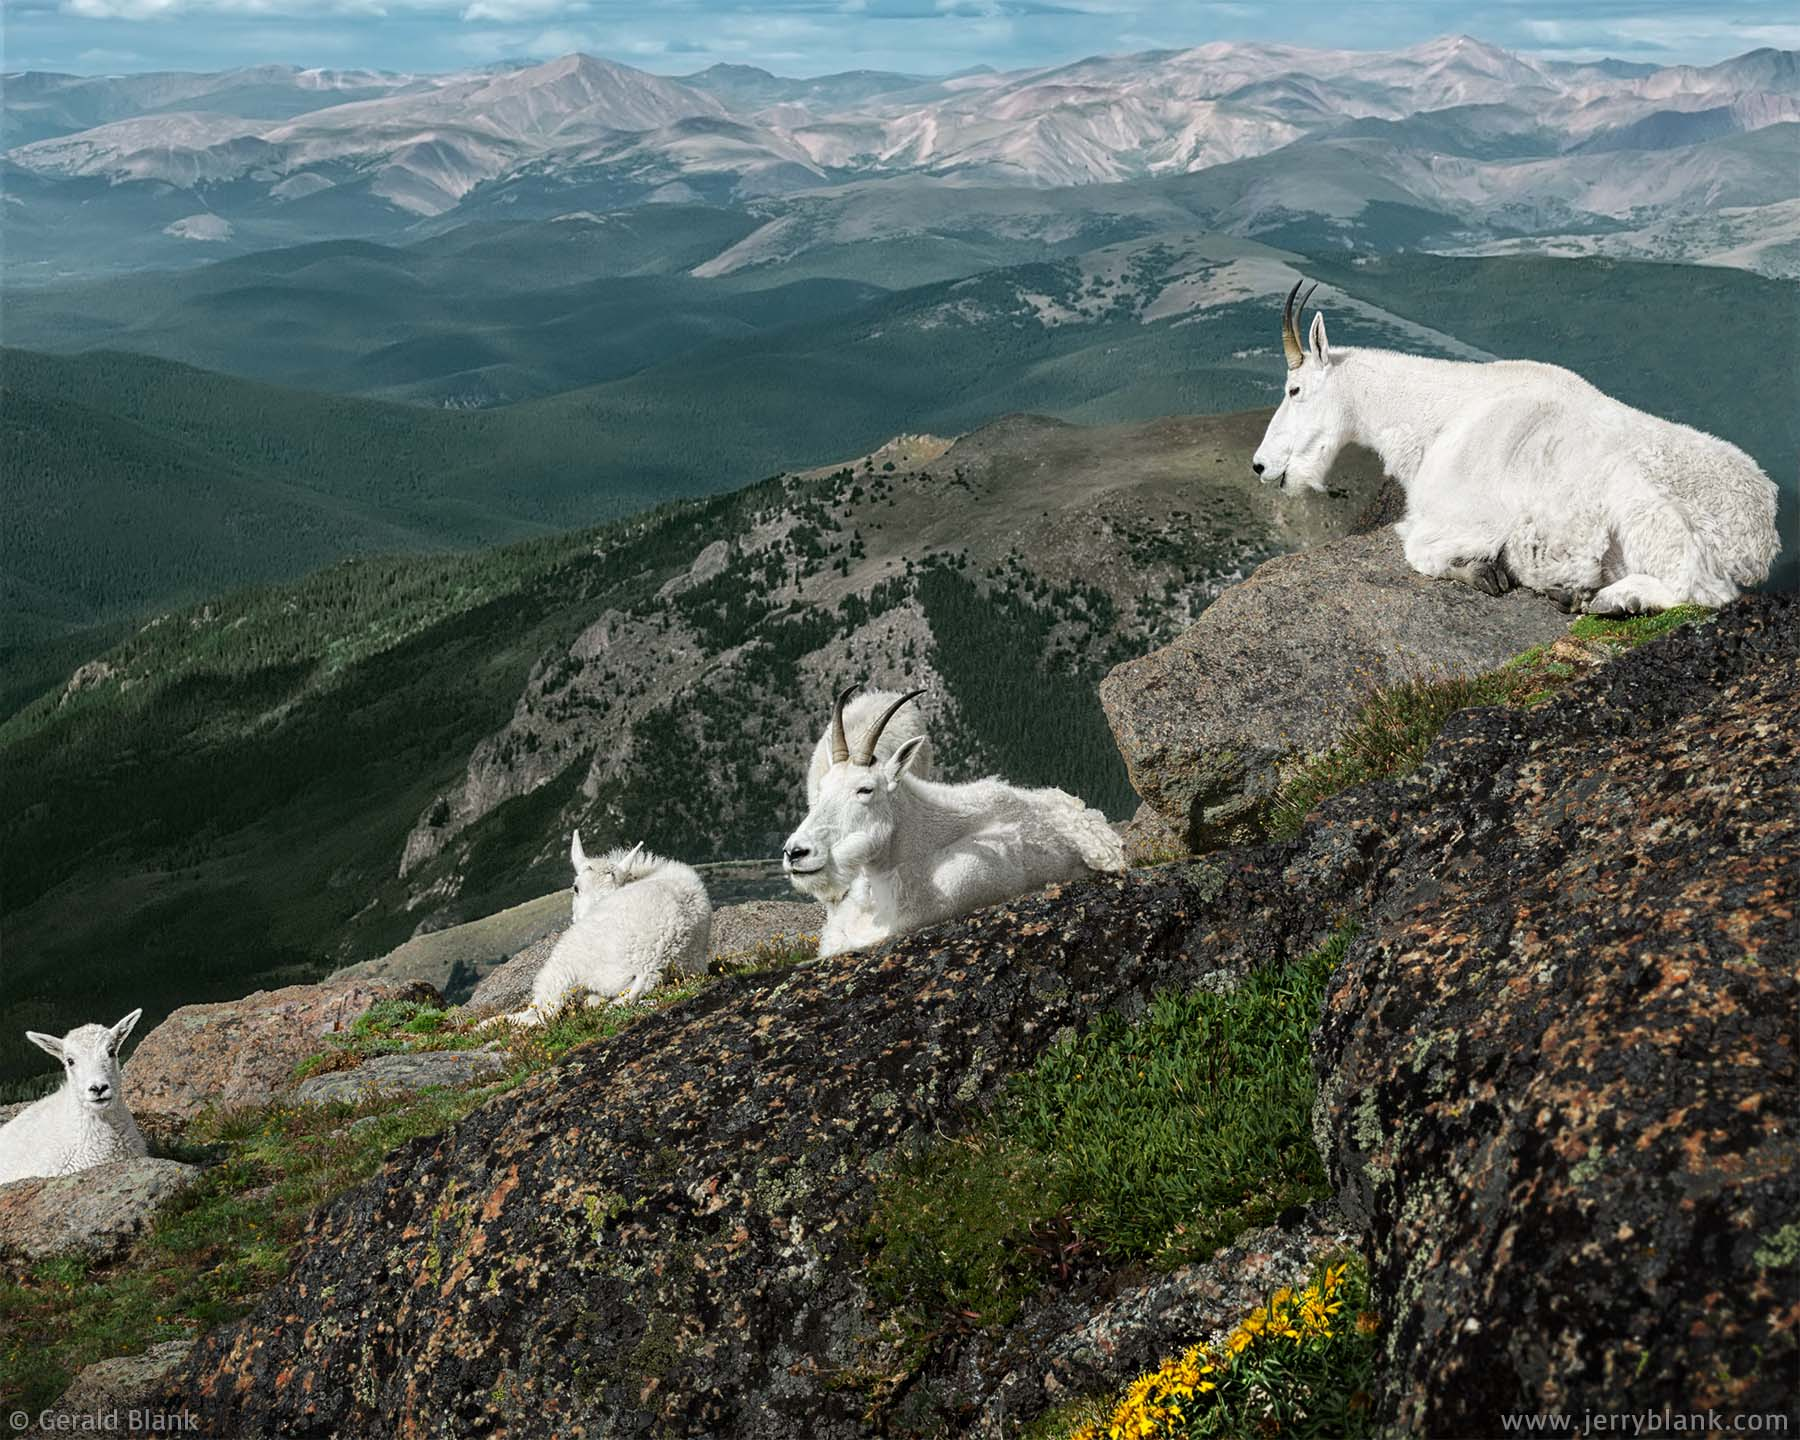 #20510 - Mountain goats with kids on the southern face of Mount Evans, Colorado - wildlife photo by Jerry Blank